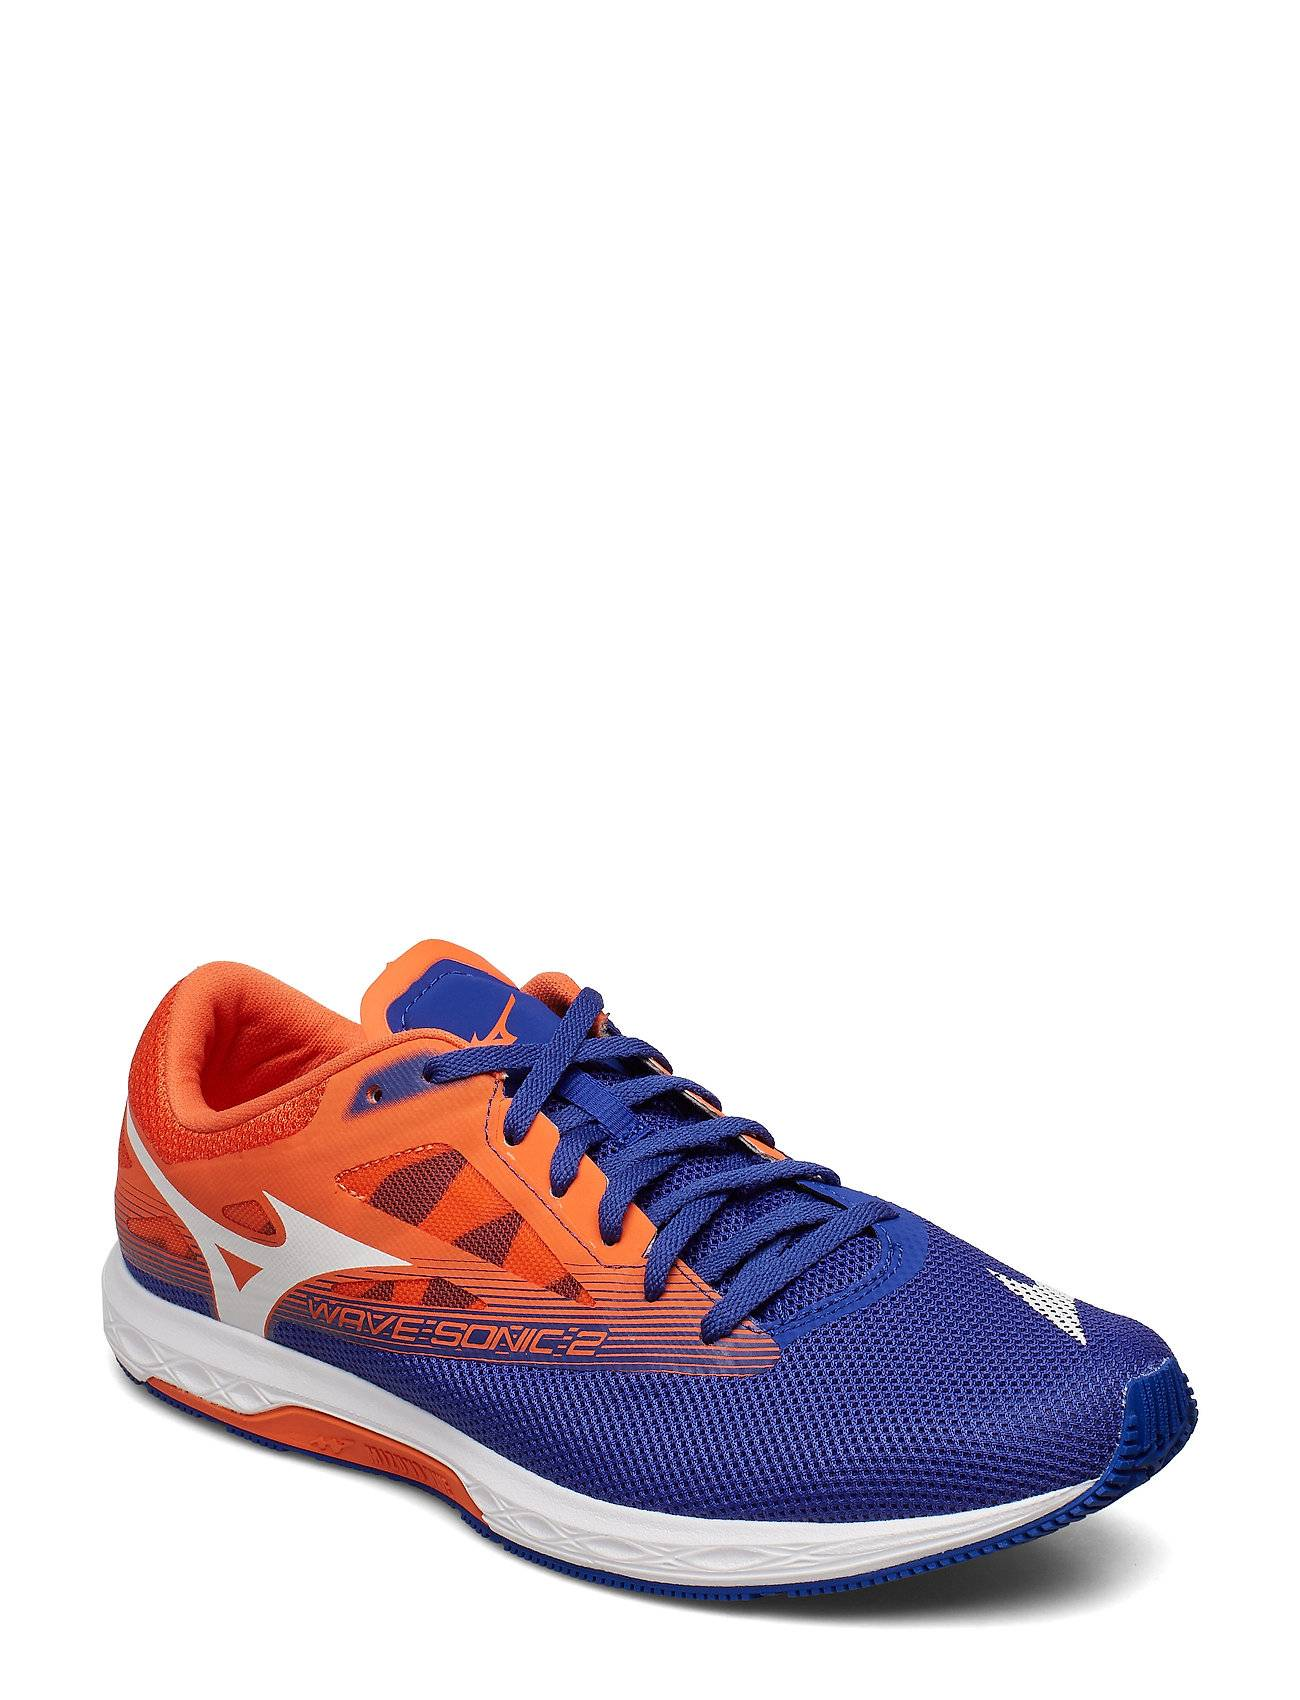 Mizuno Wave Sonic 2 Shoes Sport Shoes Running Shoes Sininen